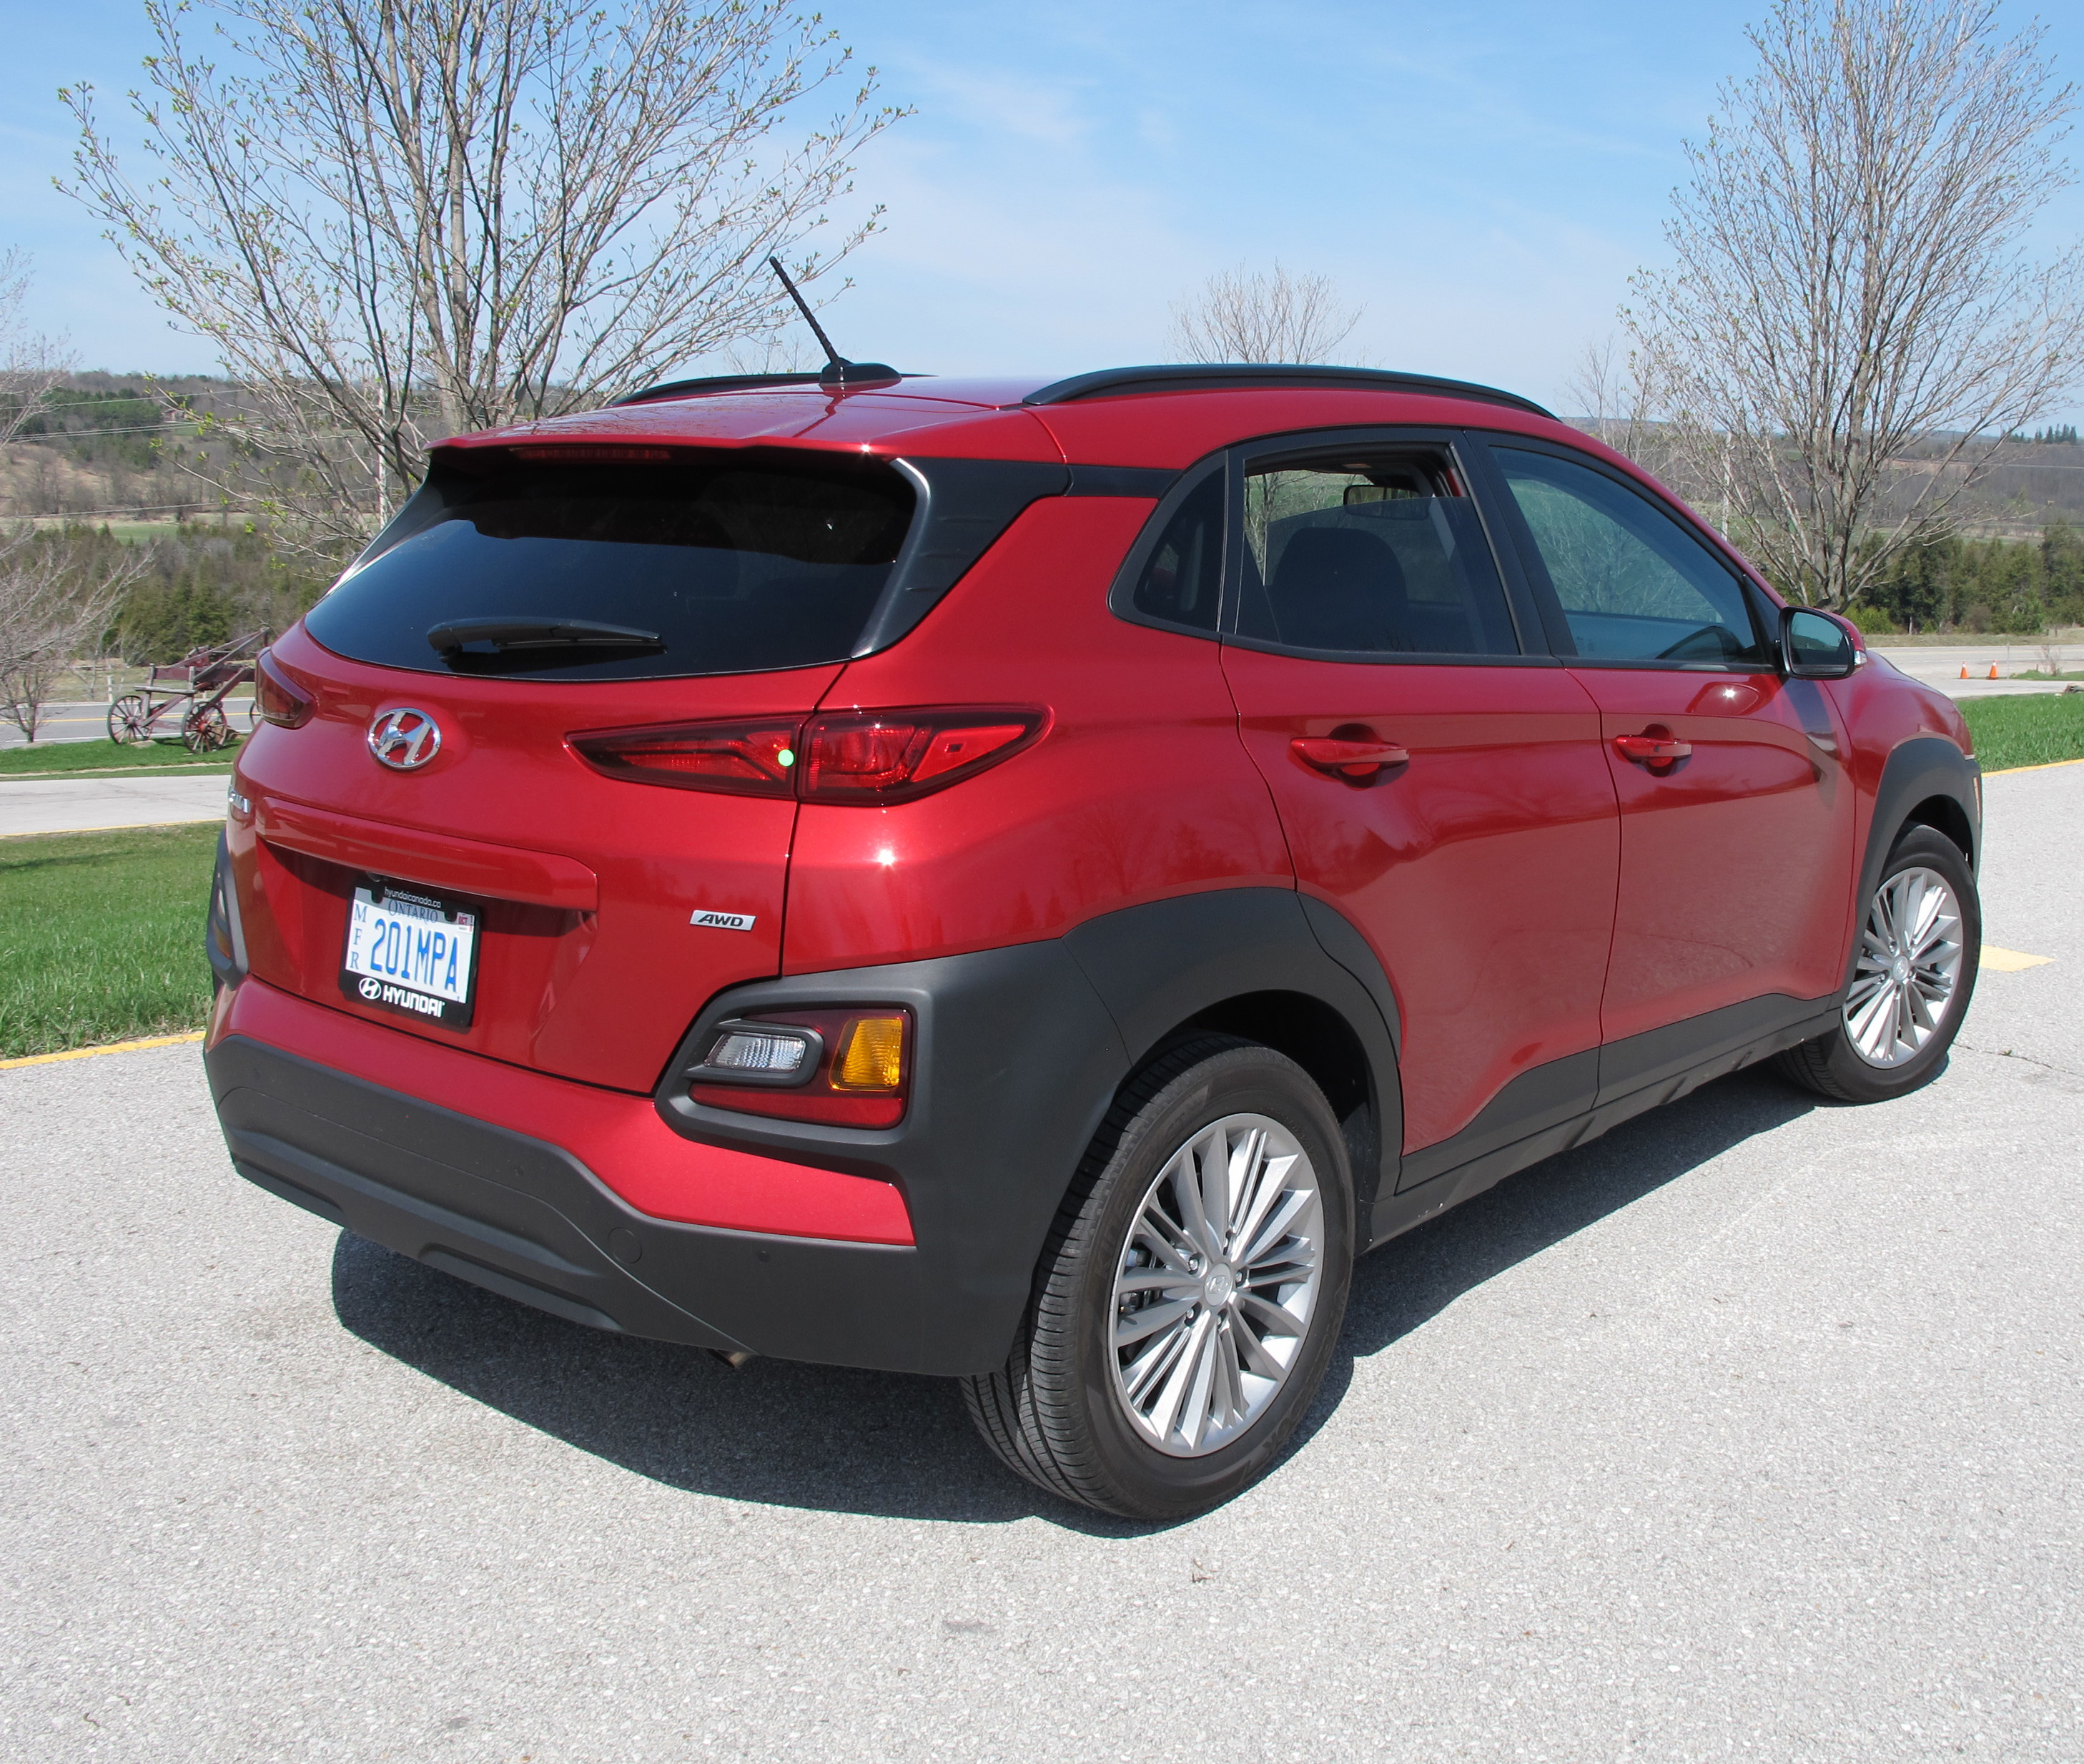 Review: 2018 Hyundai Kona CUV